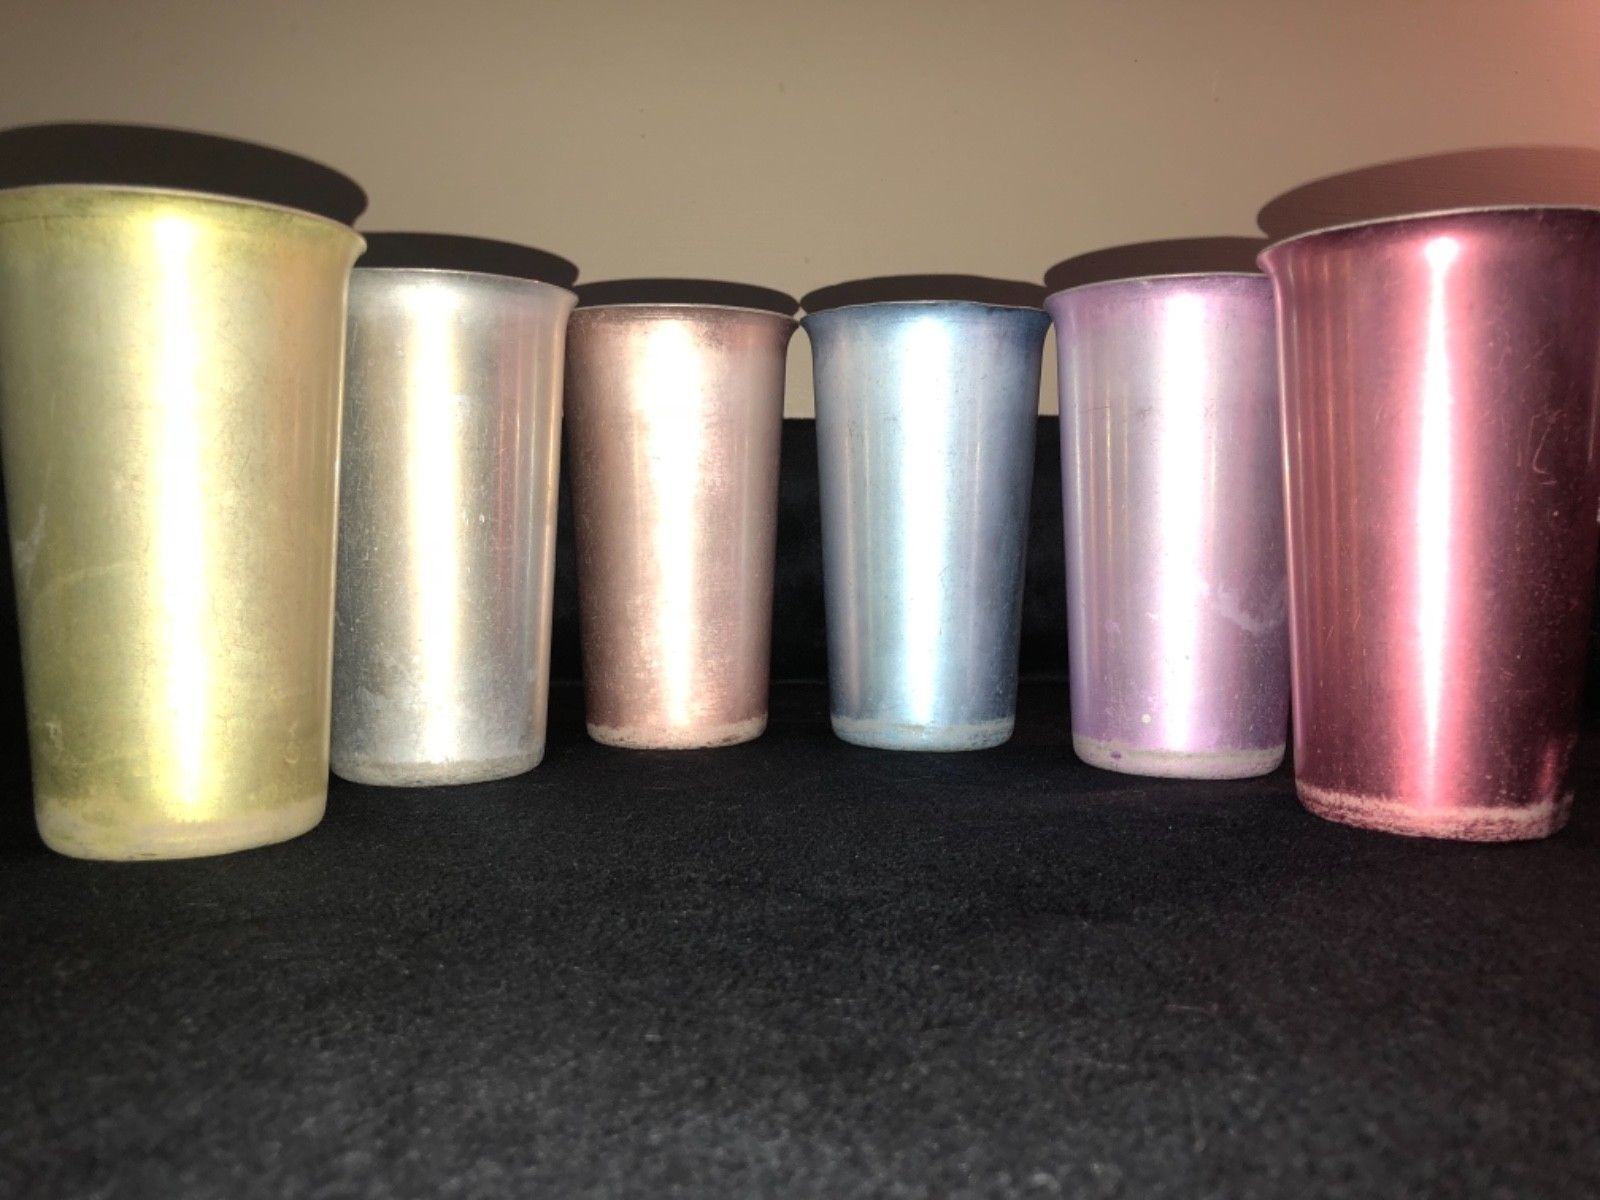 set of 6 anodized heller hostess ware colorama tumblers - vintage aluminum cups